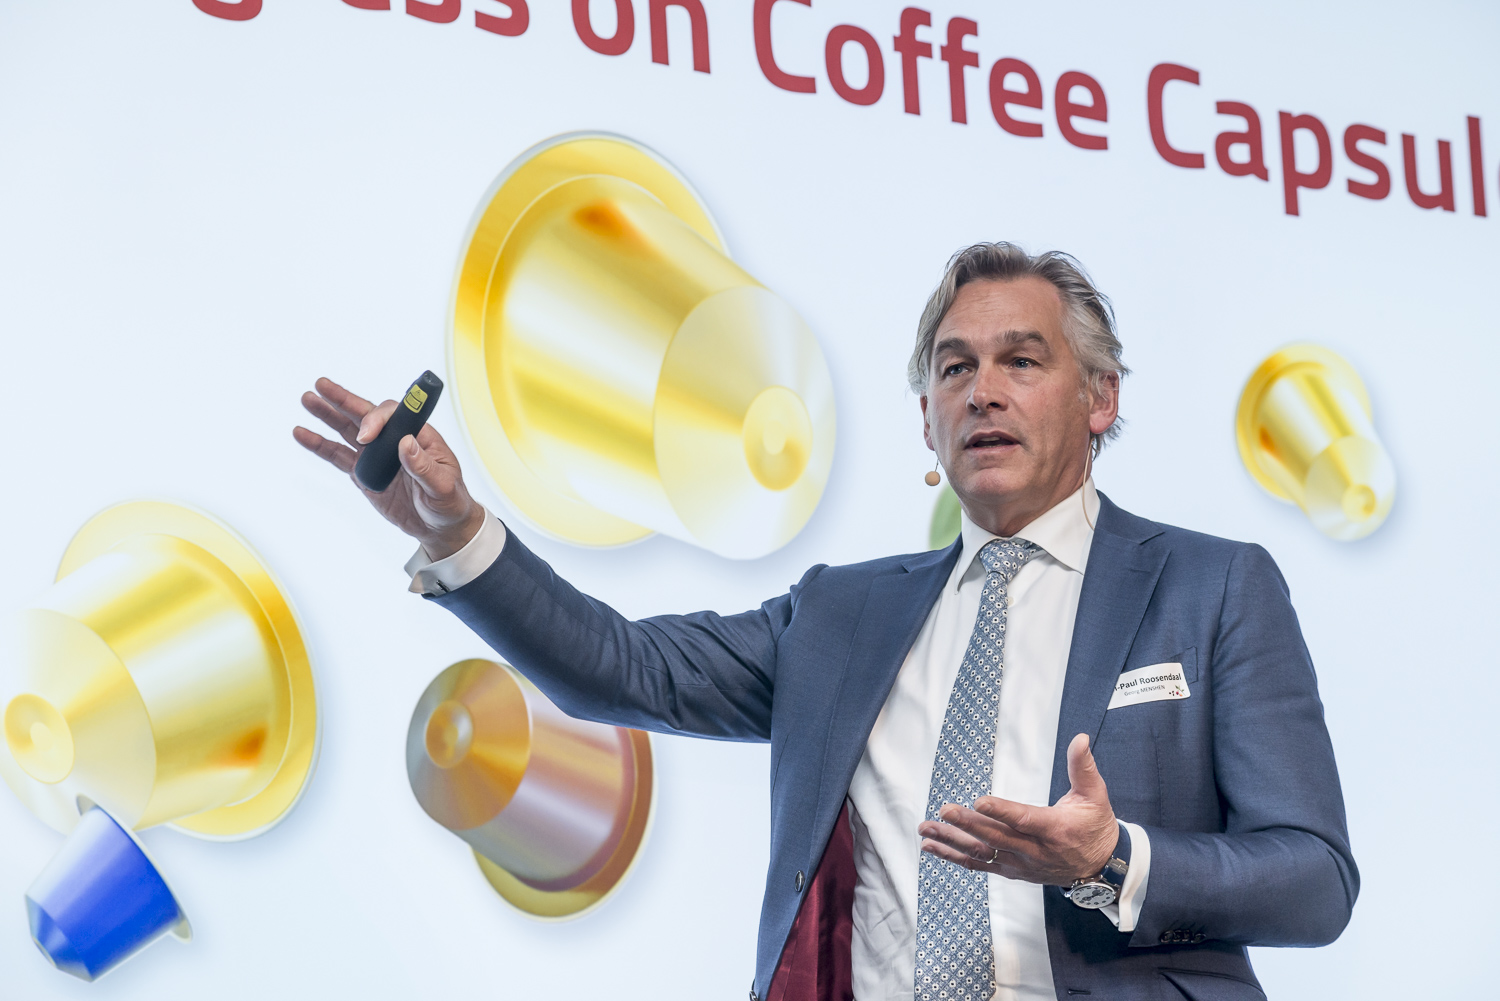 European Congress on Coffee Capsules